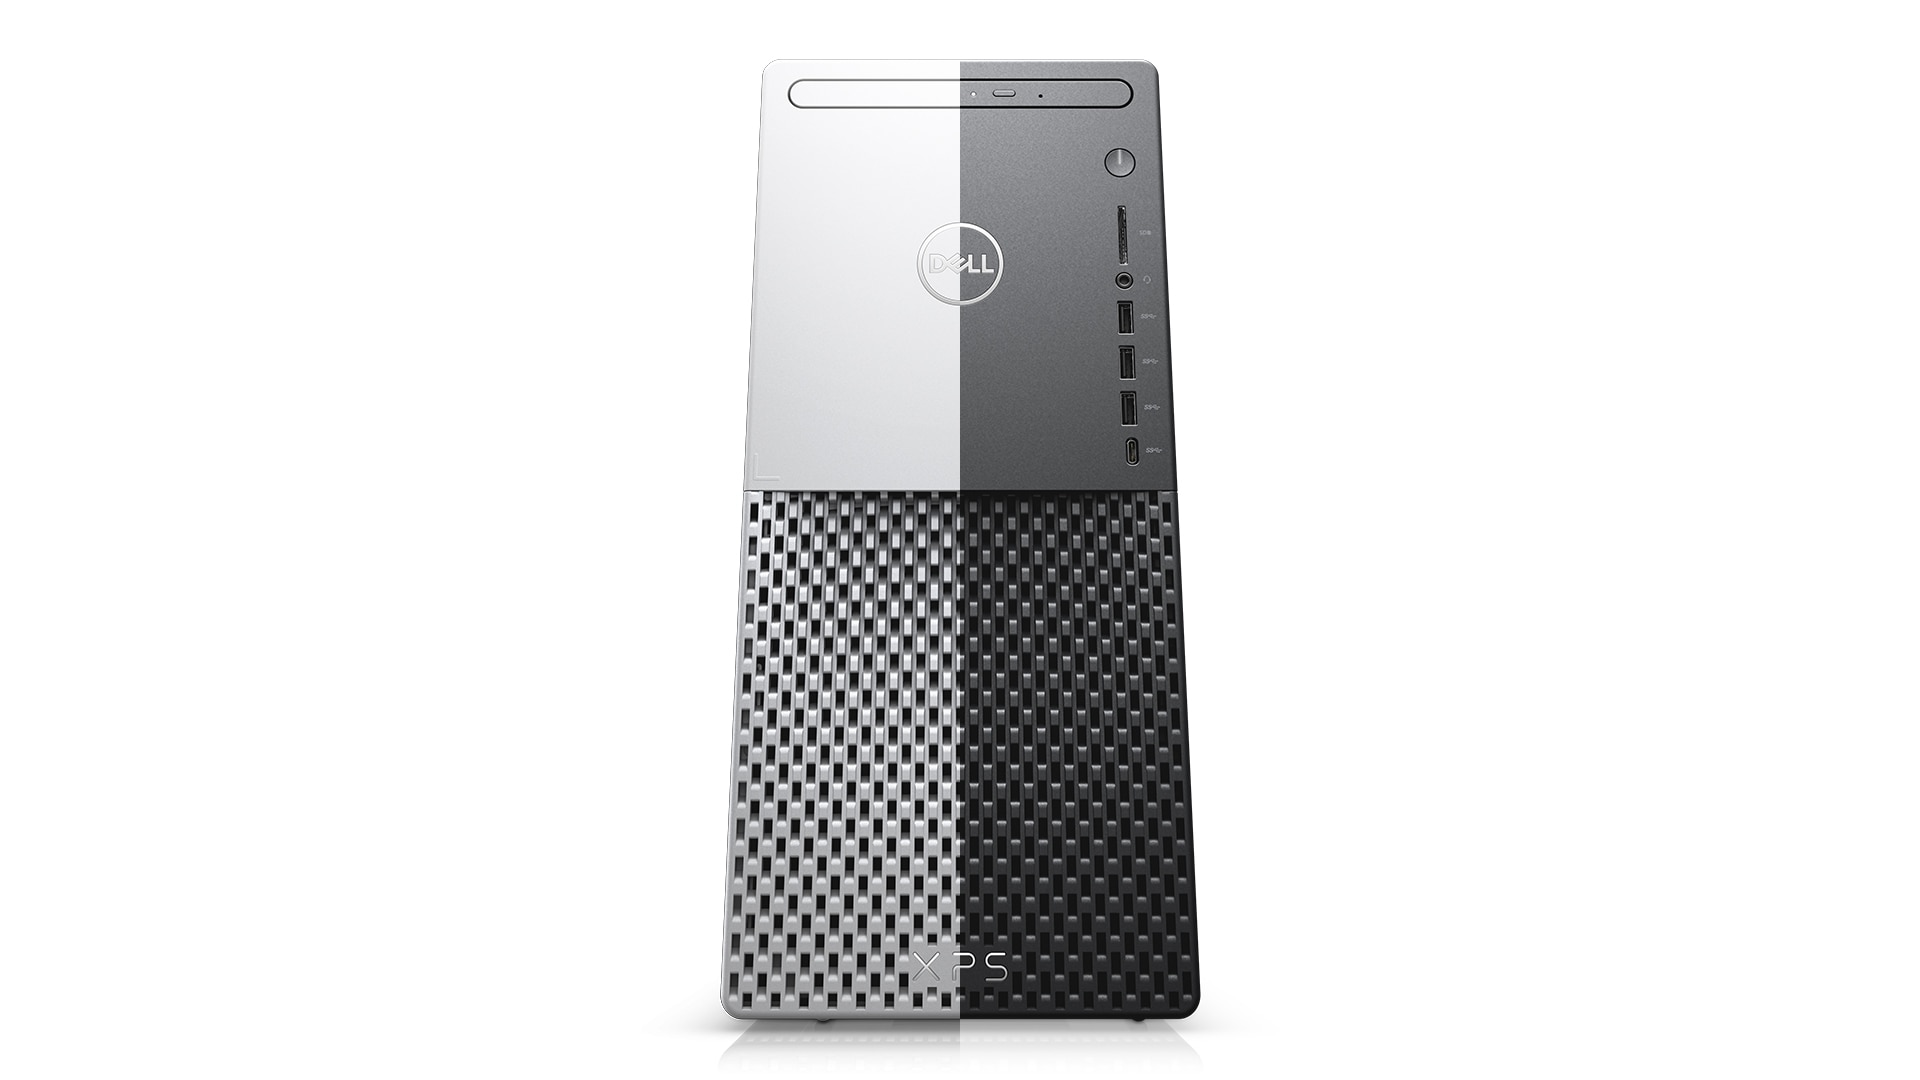 XPS Tower Special Edition (2020)